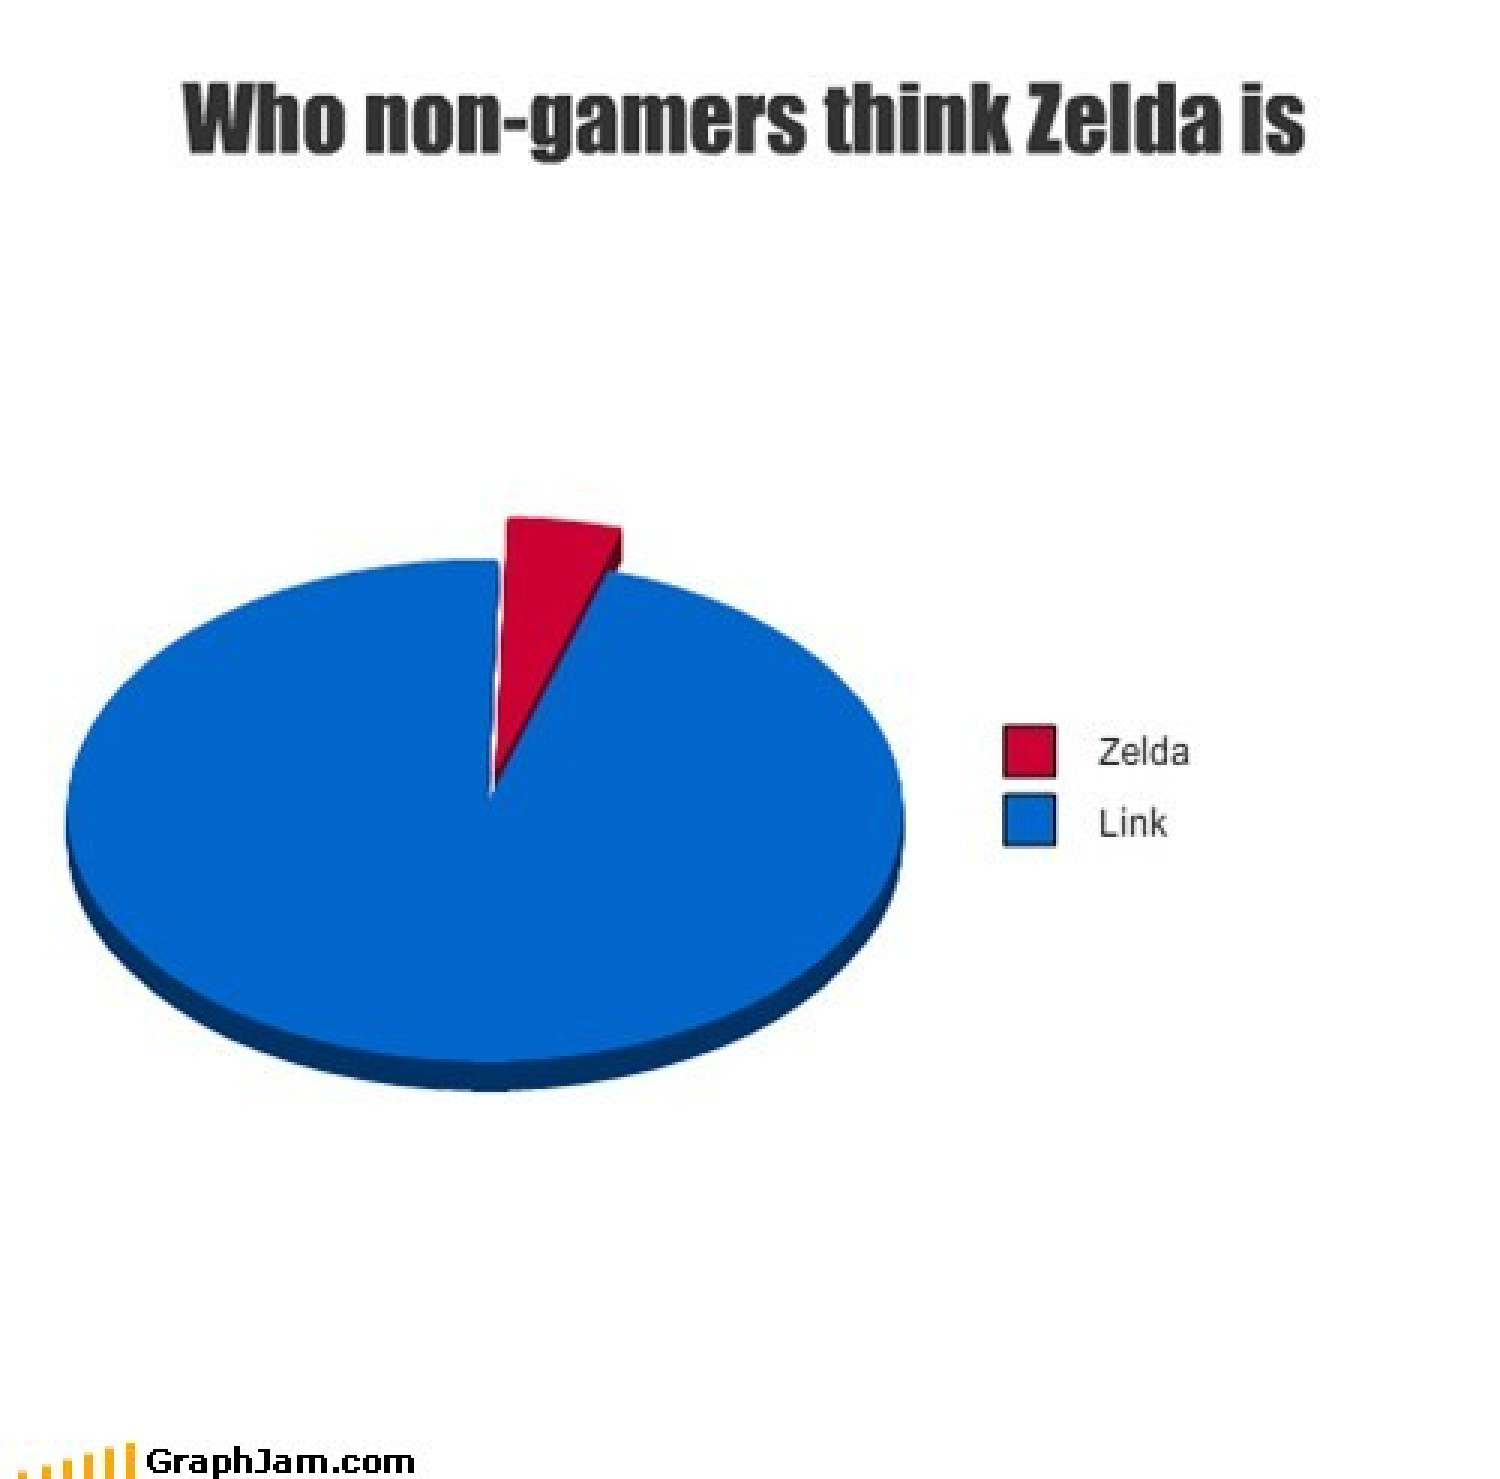 Zelda's a girl! Get it right! Infographic